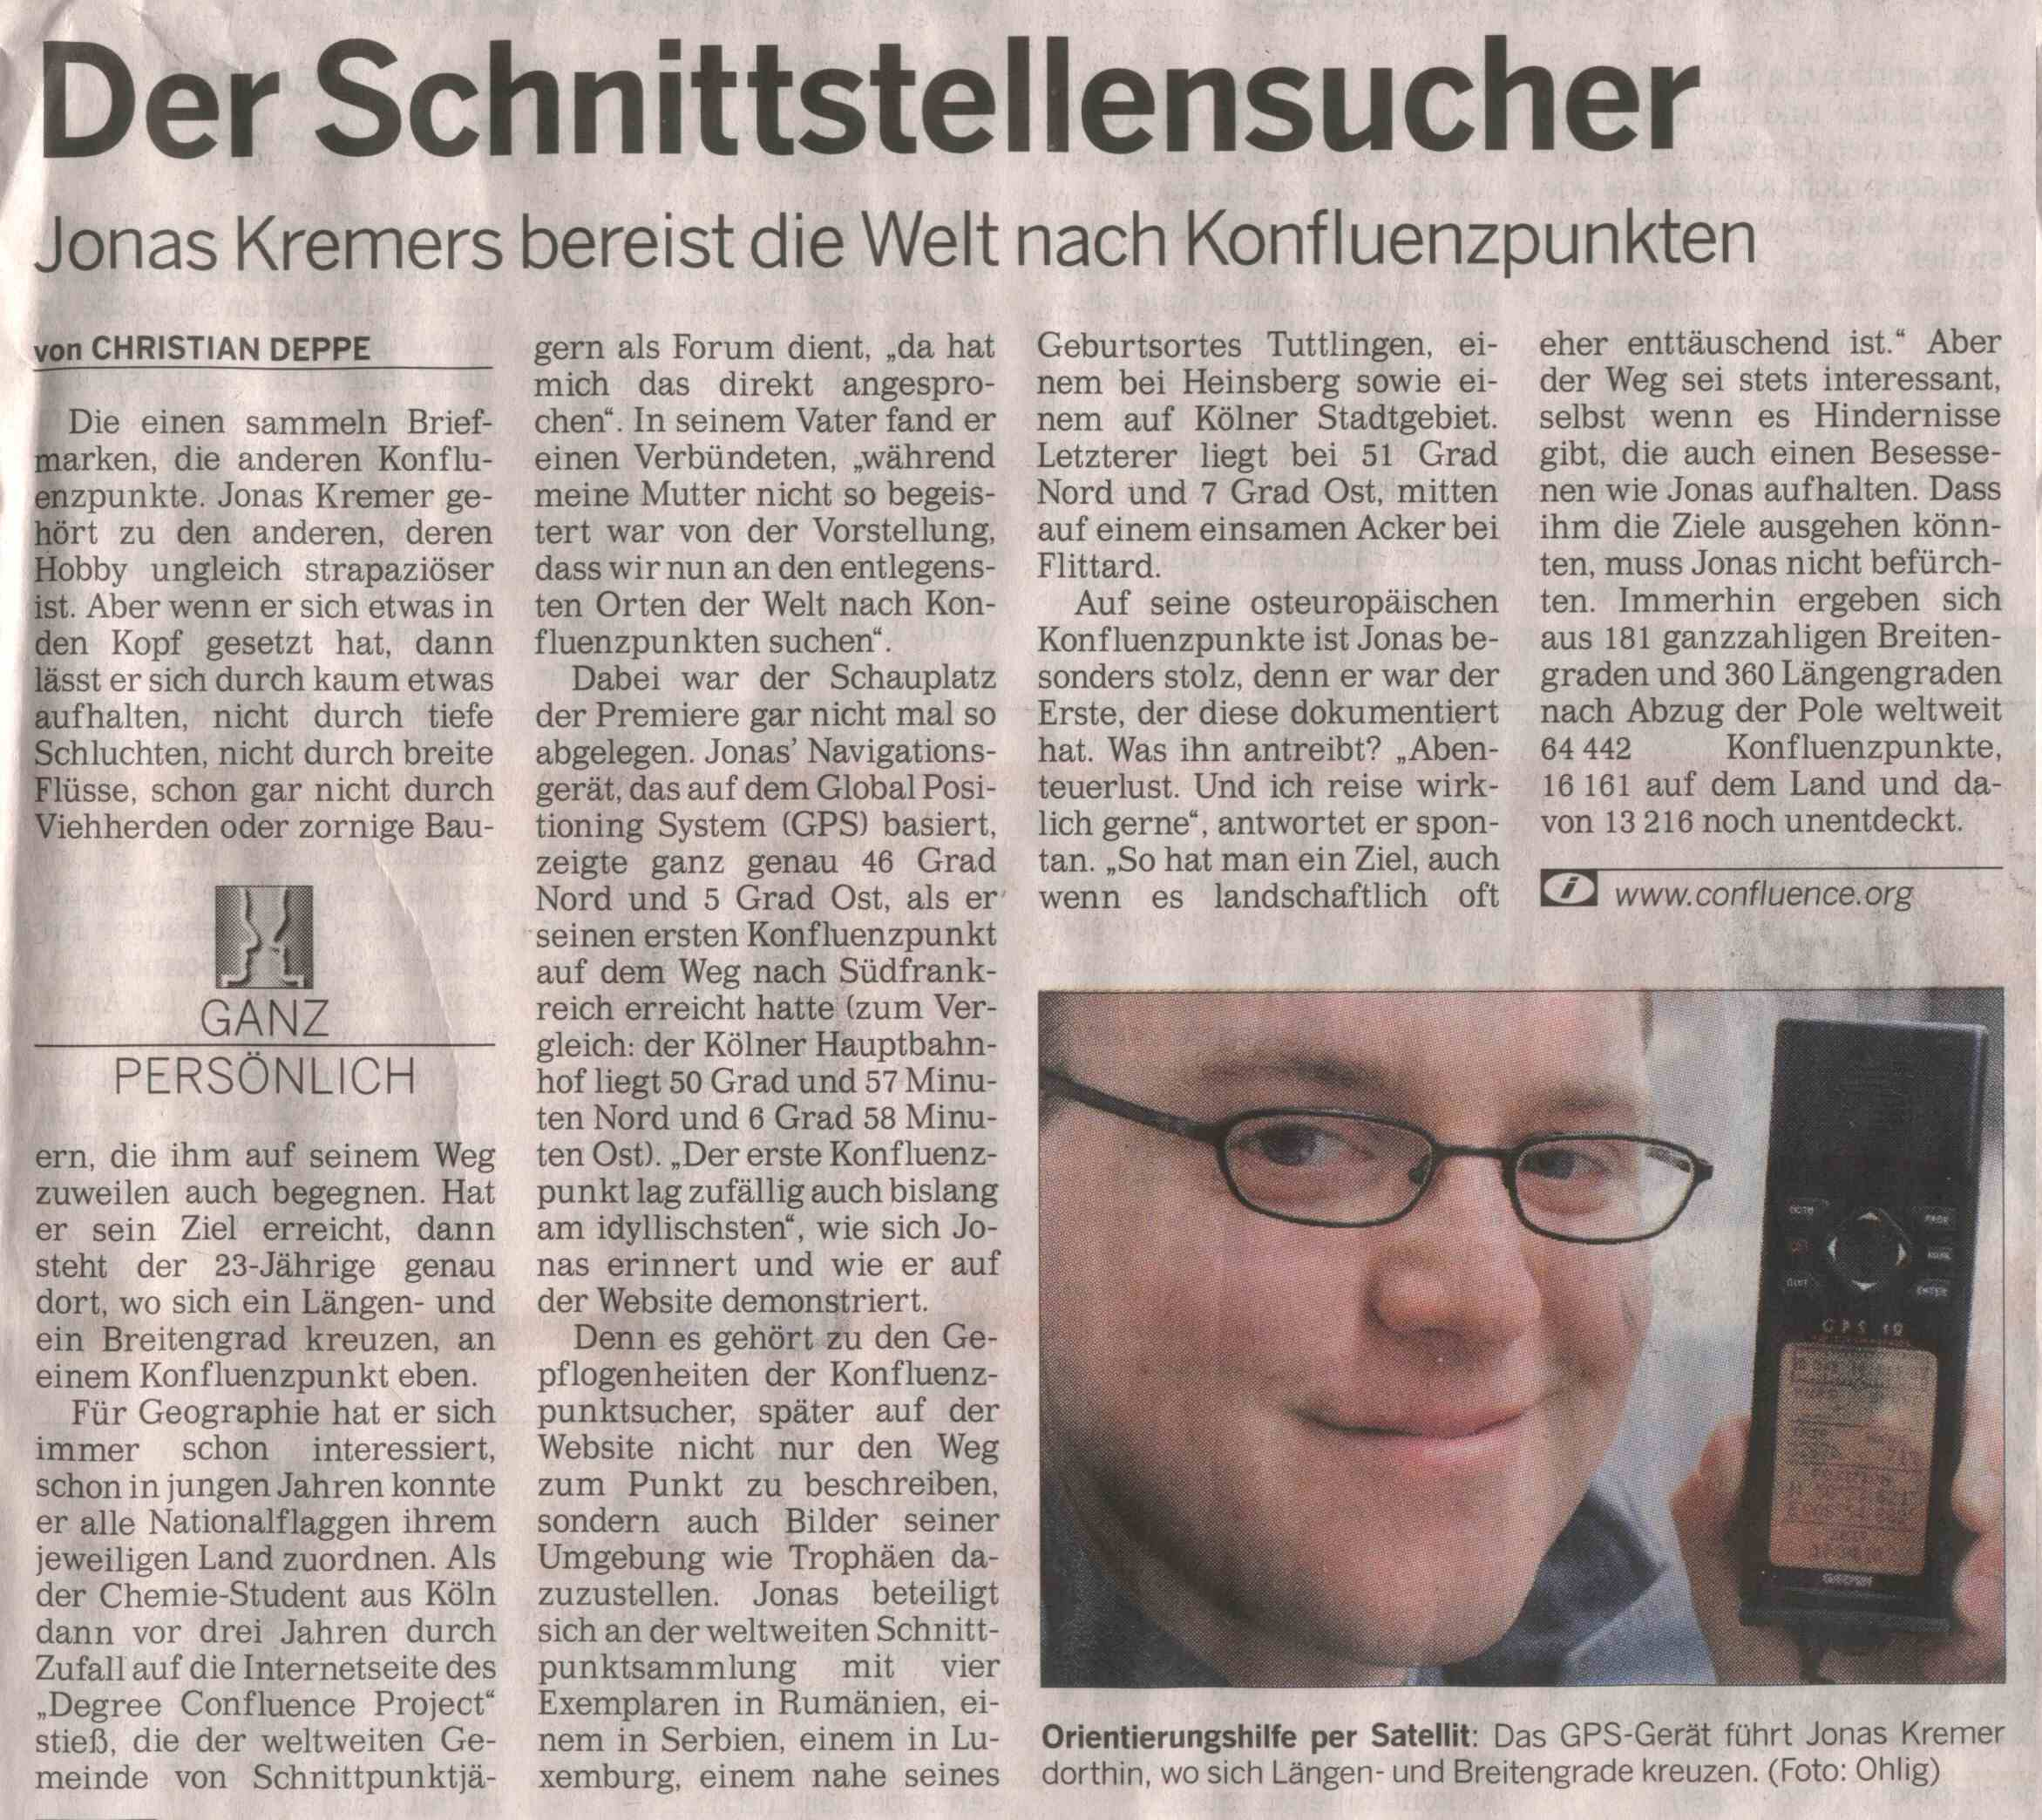 K�lnische Rundschau article